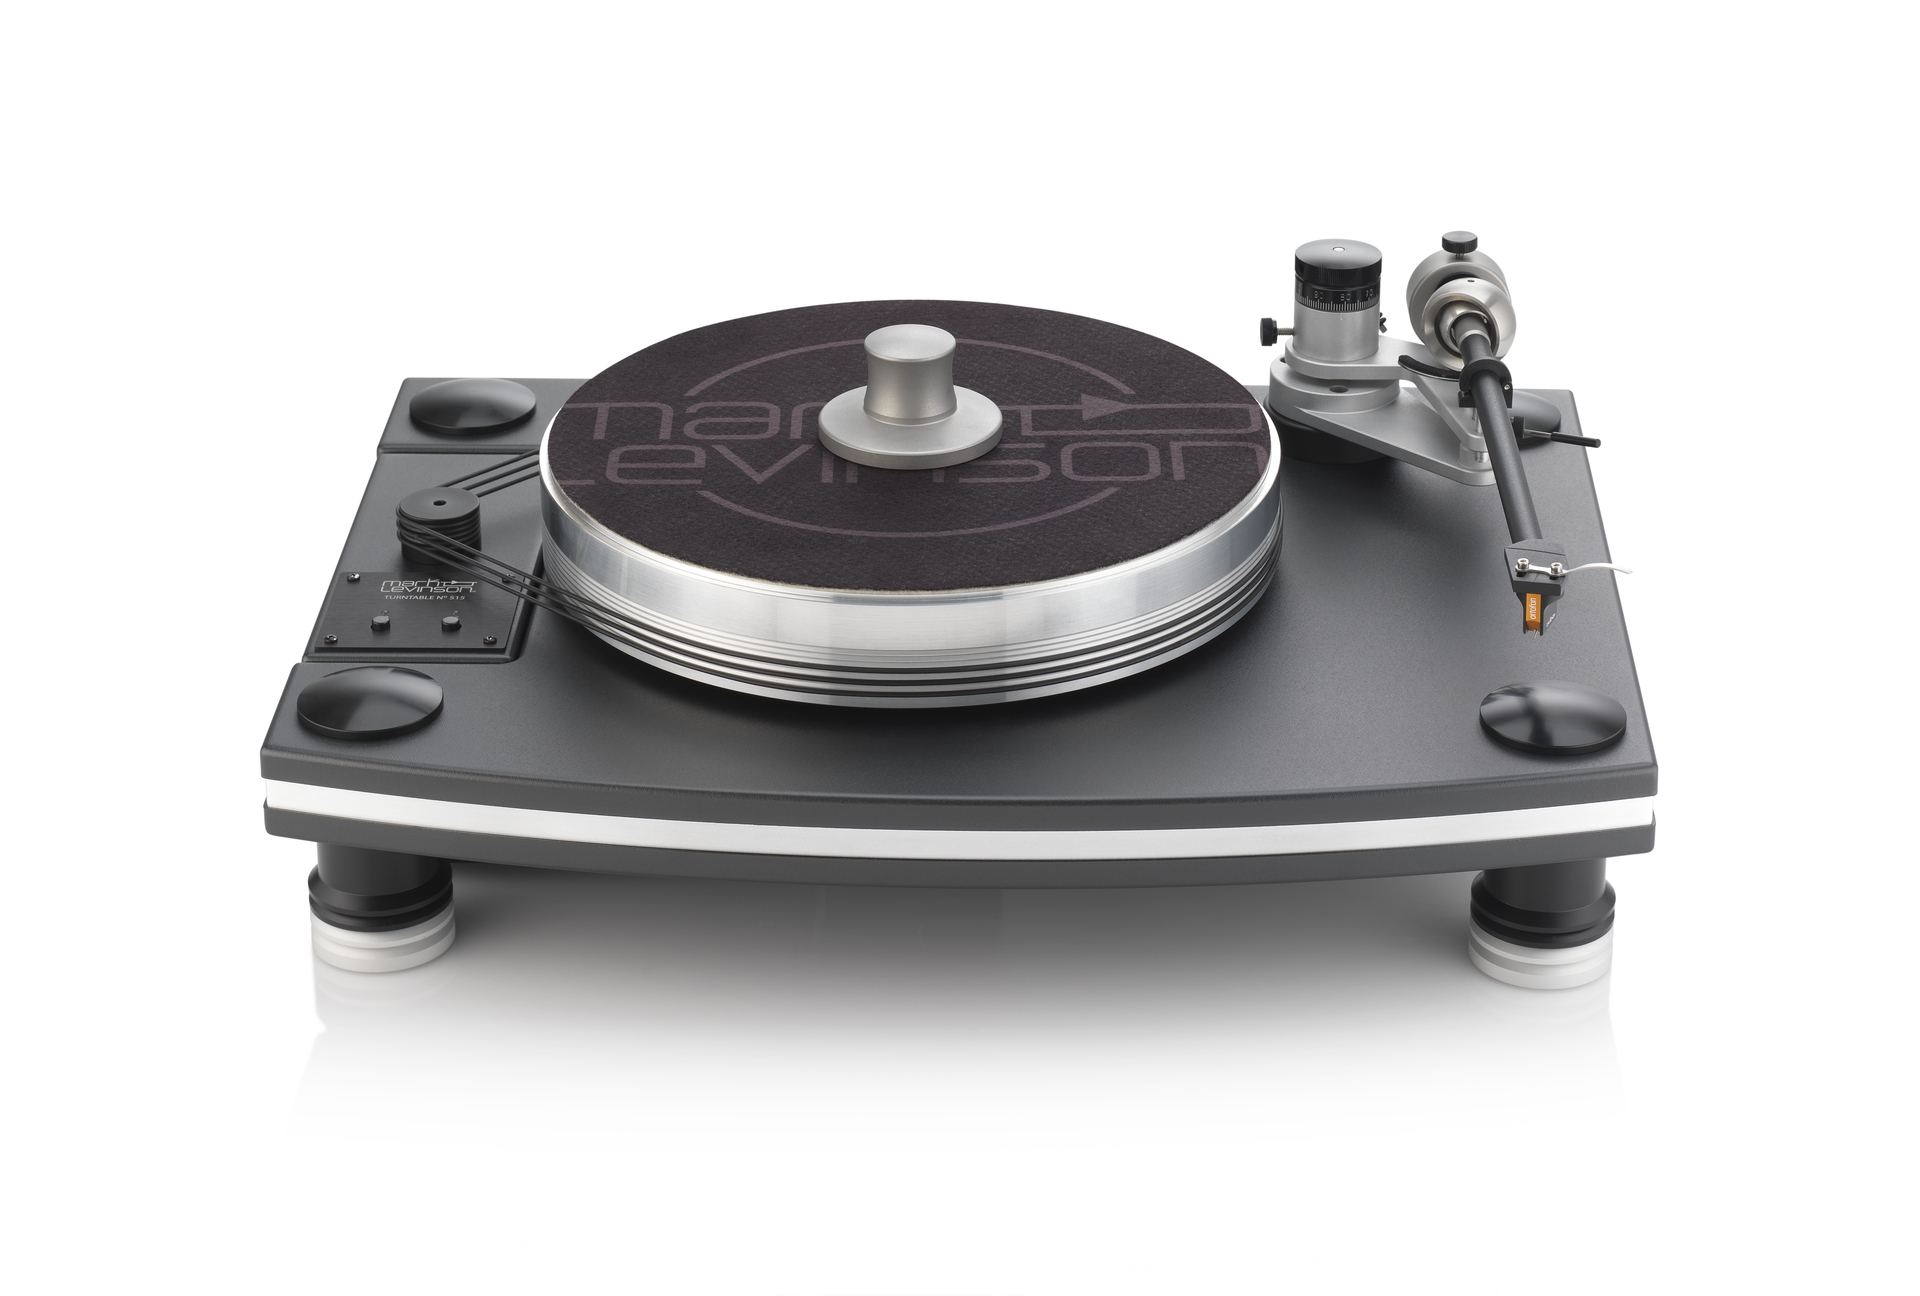 MarkLevinson_No515 Turntable_3